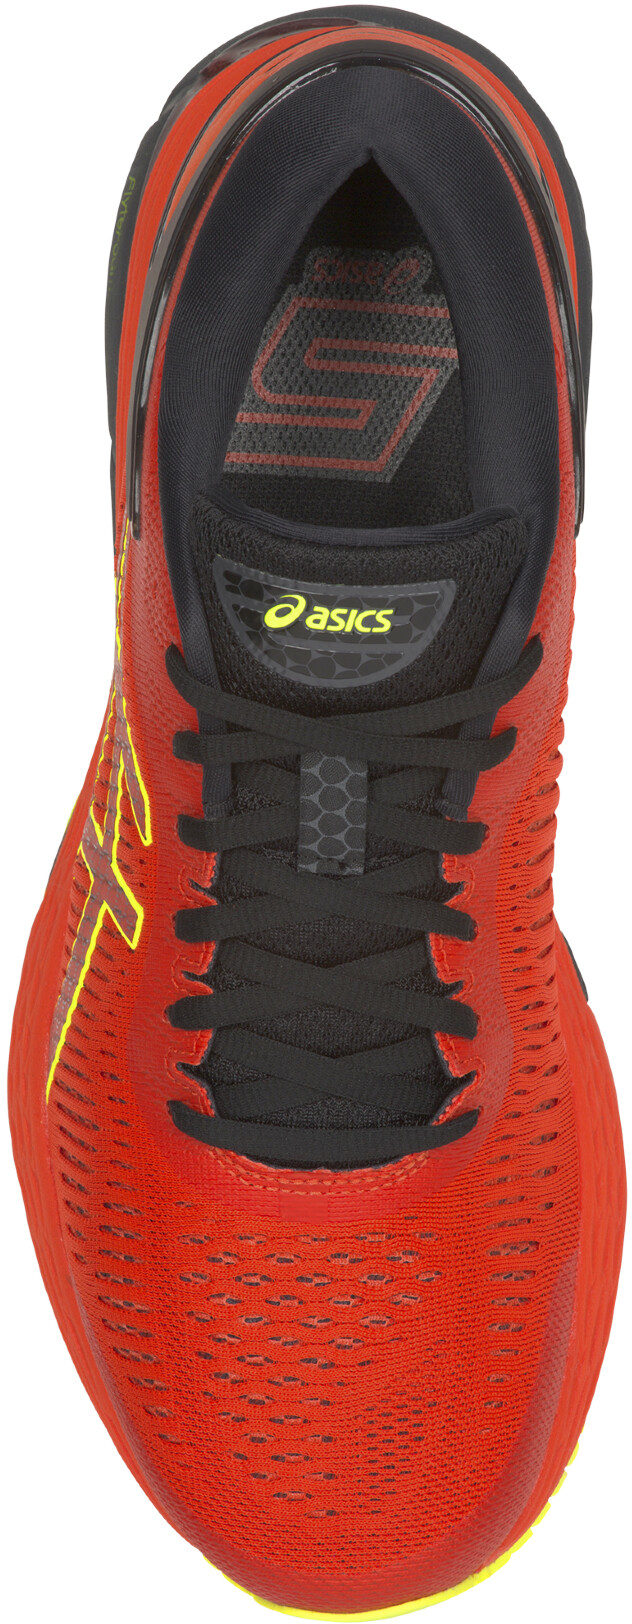 d92704bb69c asics Gel-Kayano 25 Shoes Men Cherry Tomato/Safety Yellow   campz.ch